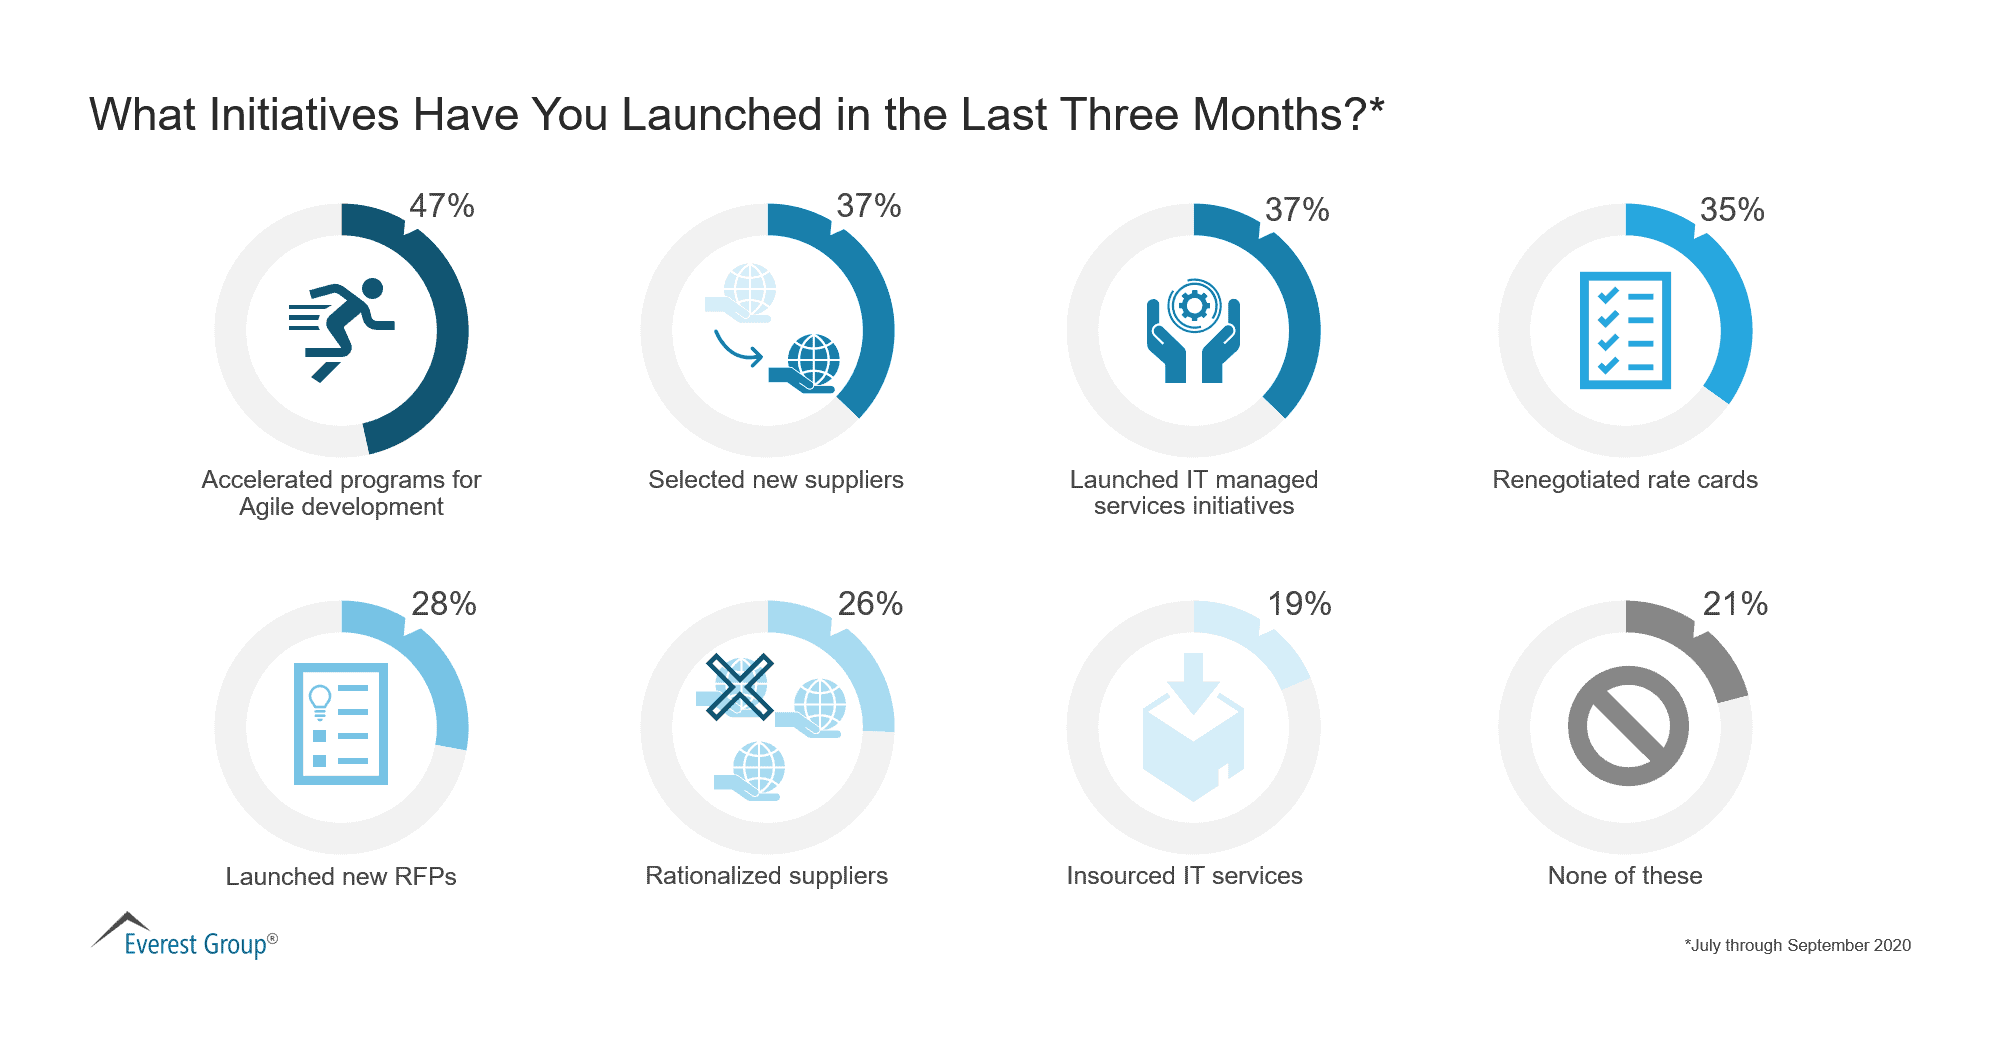 What Initiatives Have You Launched in the Last Three Months